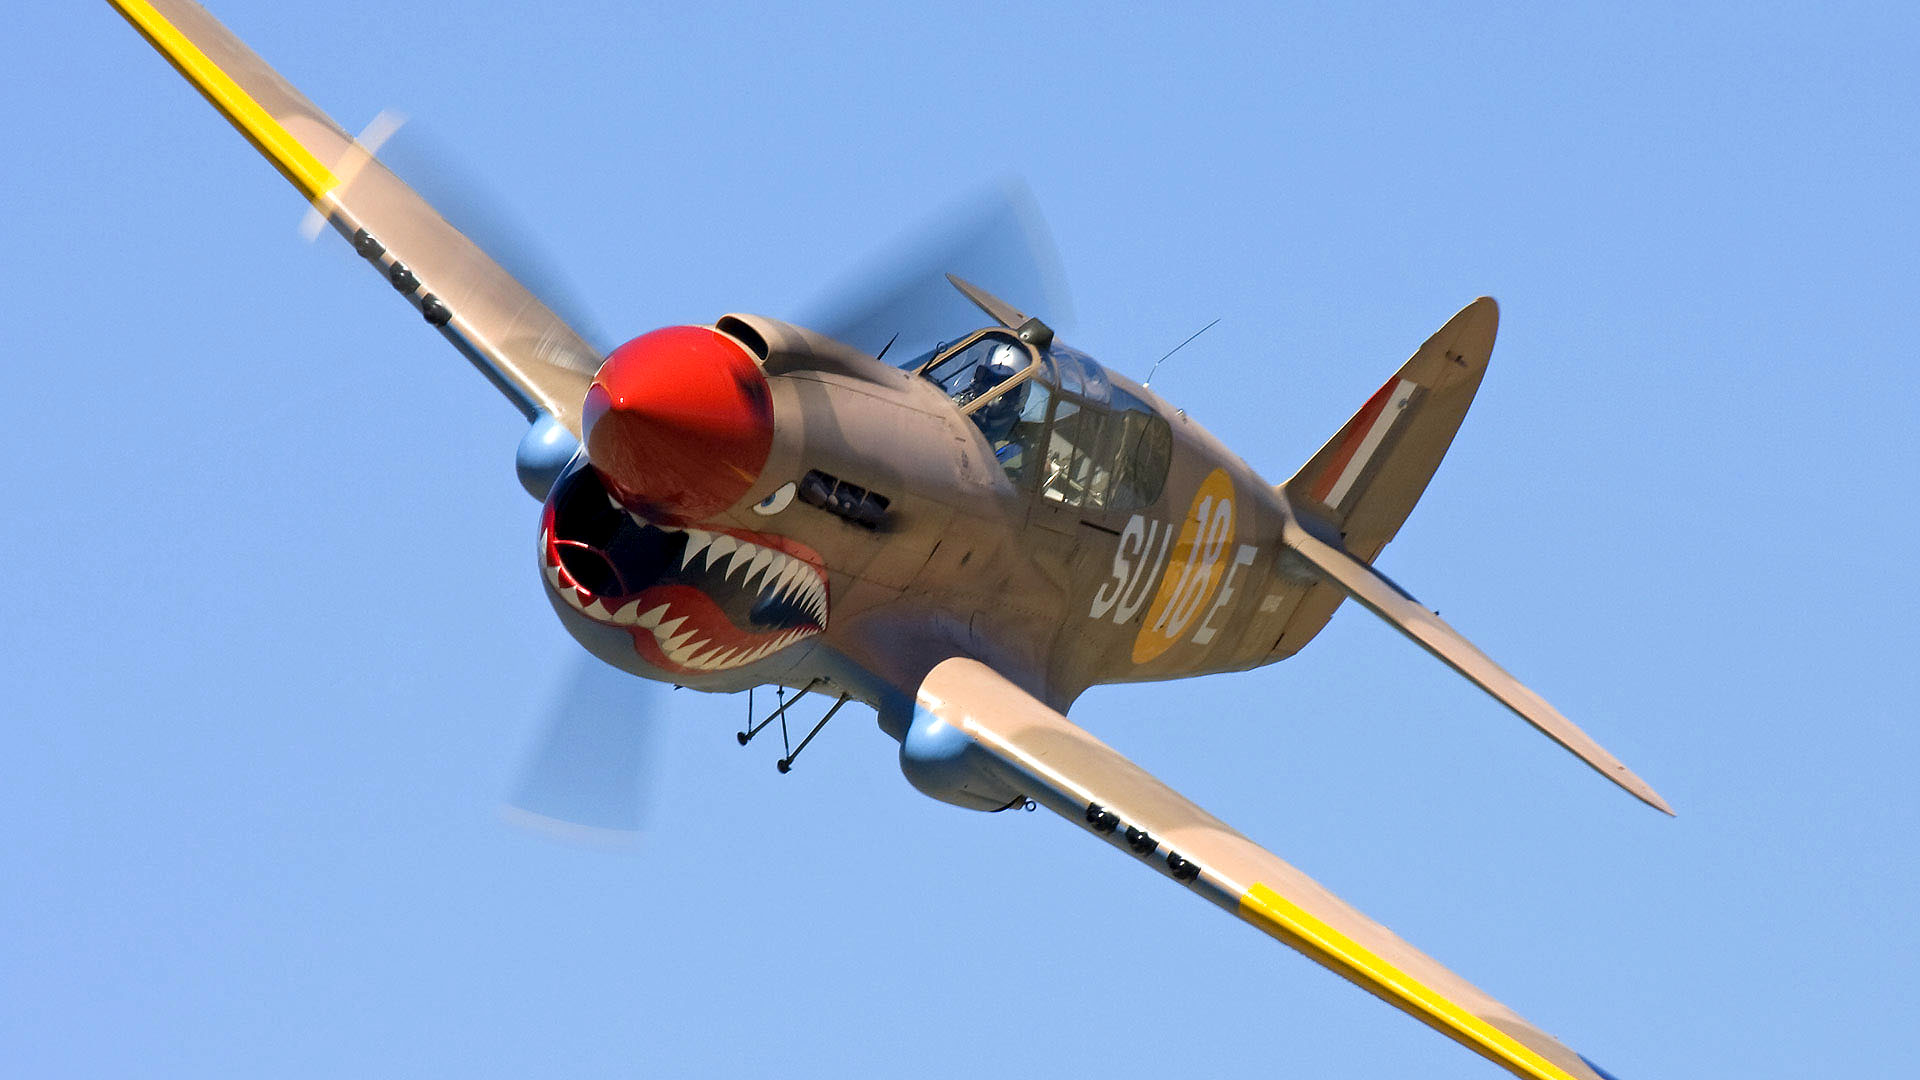 11 Curtiss P-40 Warhawk HD Wallpapers | Backgrounds ...